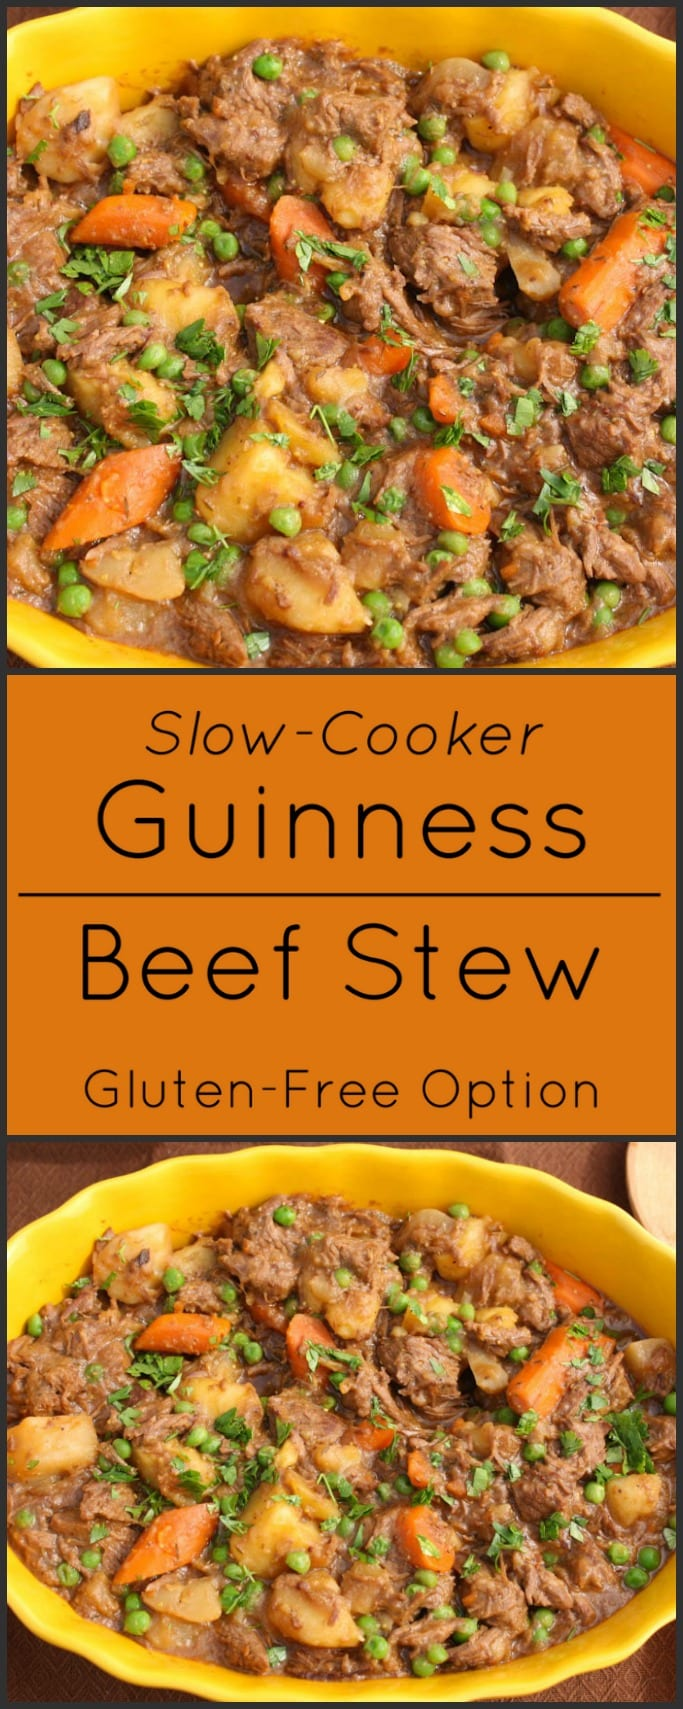 Slow-cooker Guinness Beef Stew with winter vegetables. Gluten free.